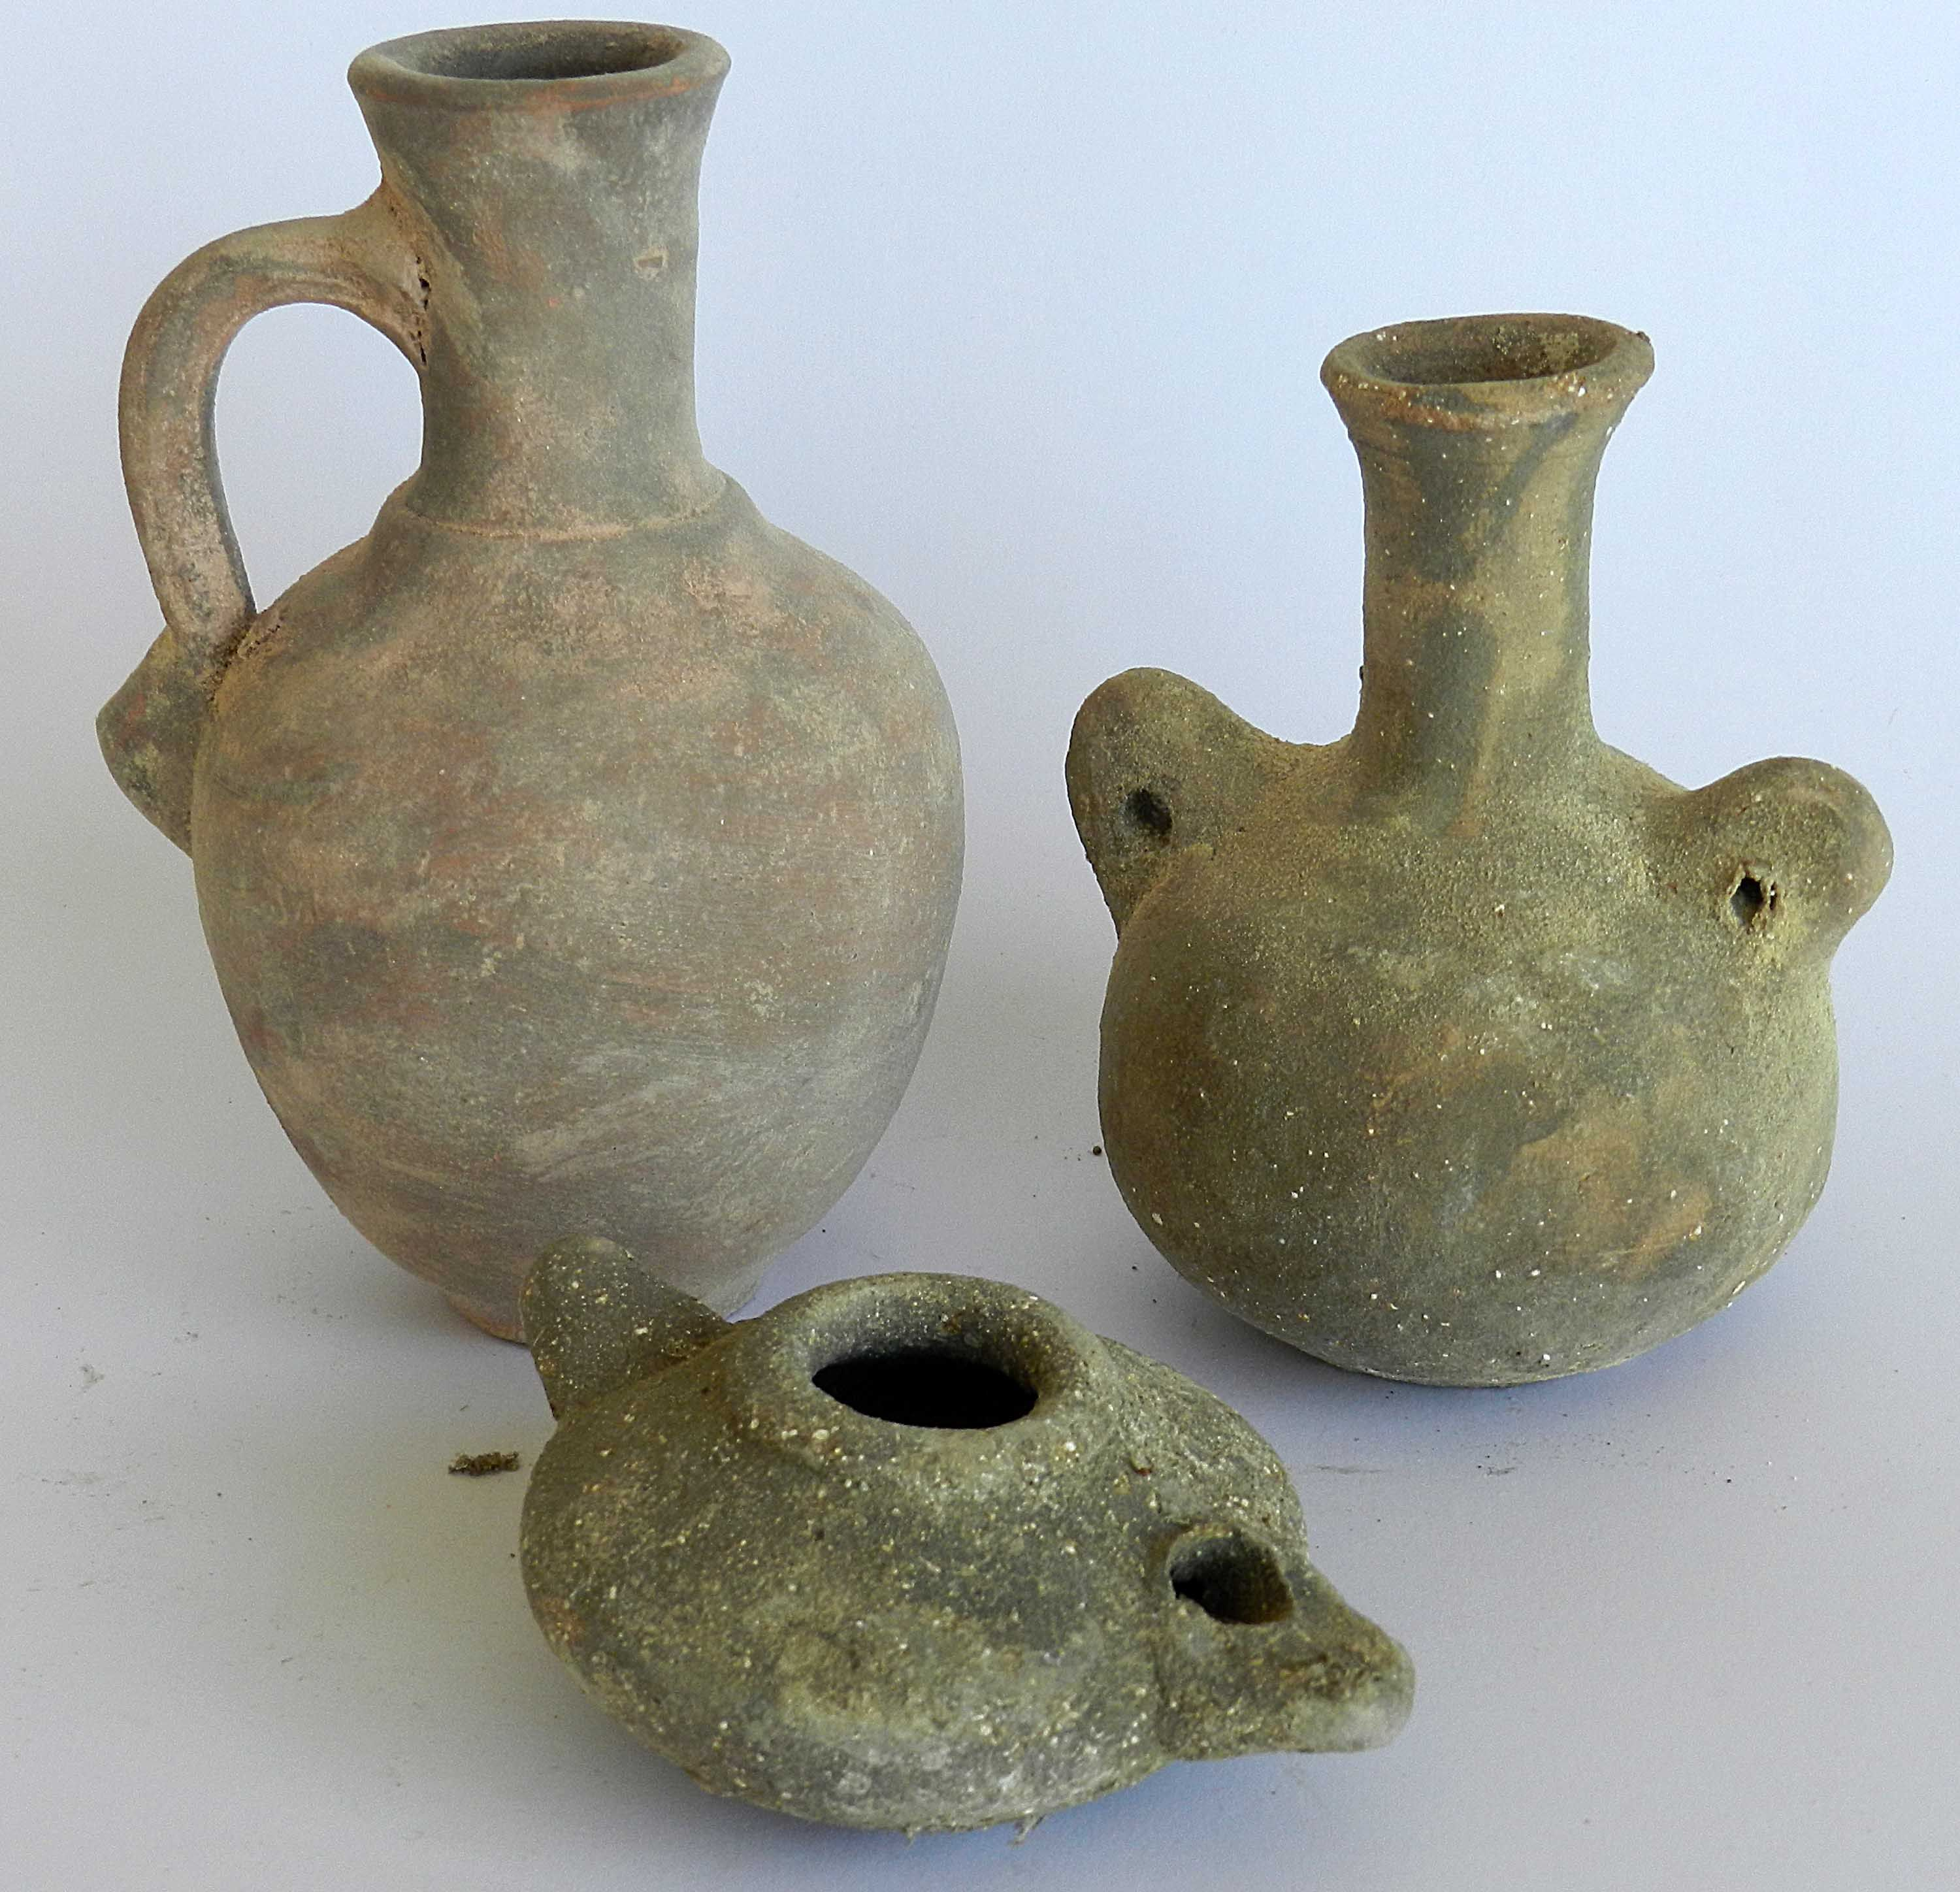 3 Lot Biblical Antique Jugs Oil Lamp Roman Byzantine Clay